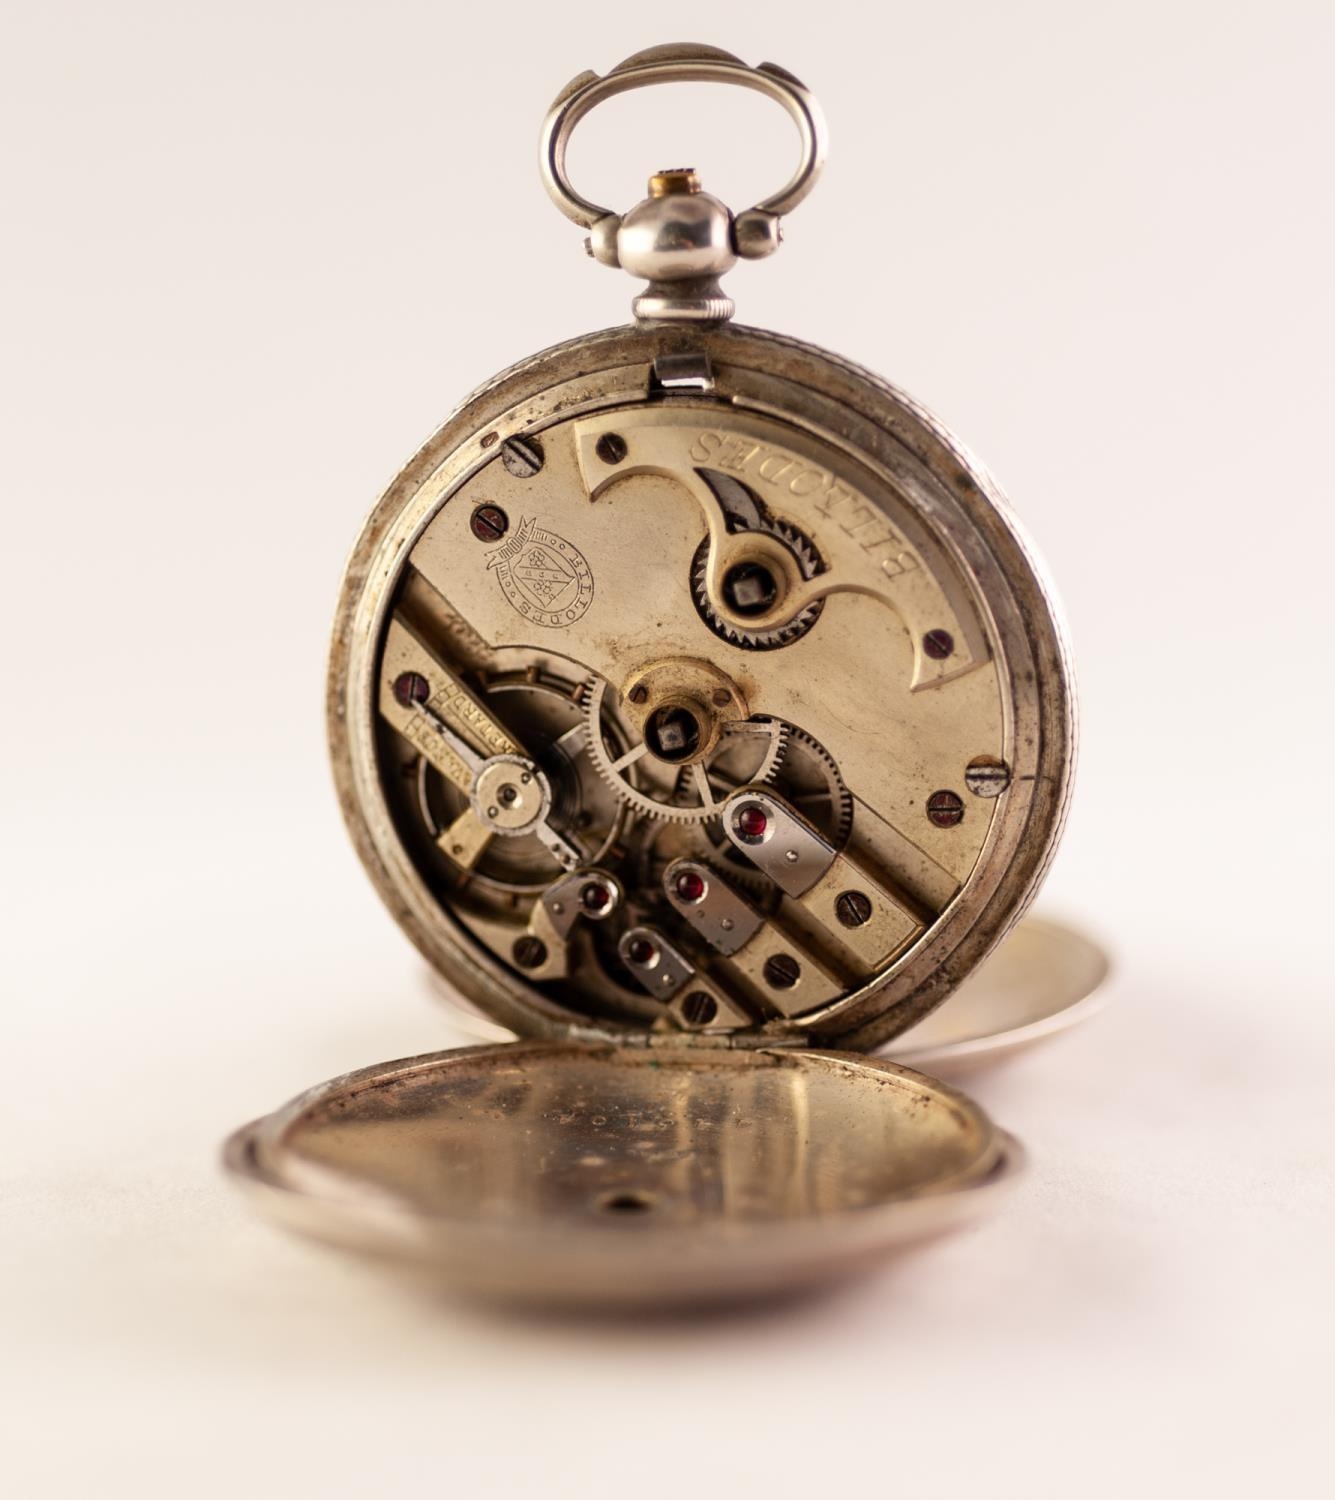 Lot 23 - TURKISH FULL HUNTER SILVER POCKET WATCH BY K. SERKISOFF & CO, CONSTANTINOPLE White dial floral